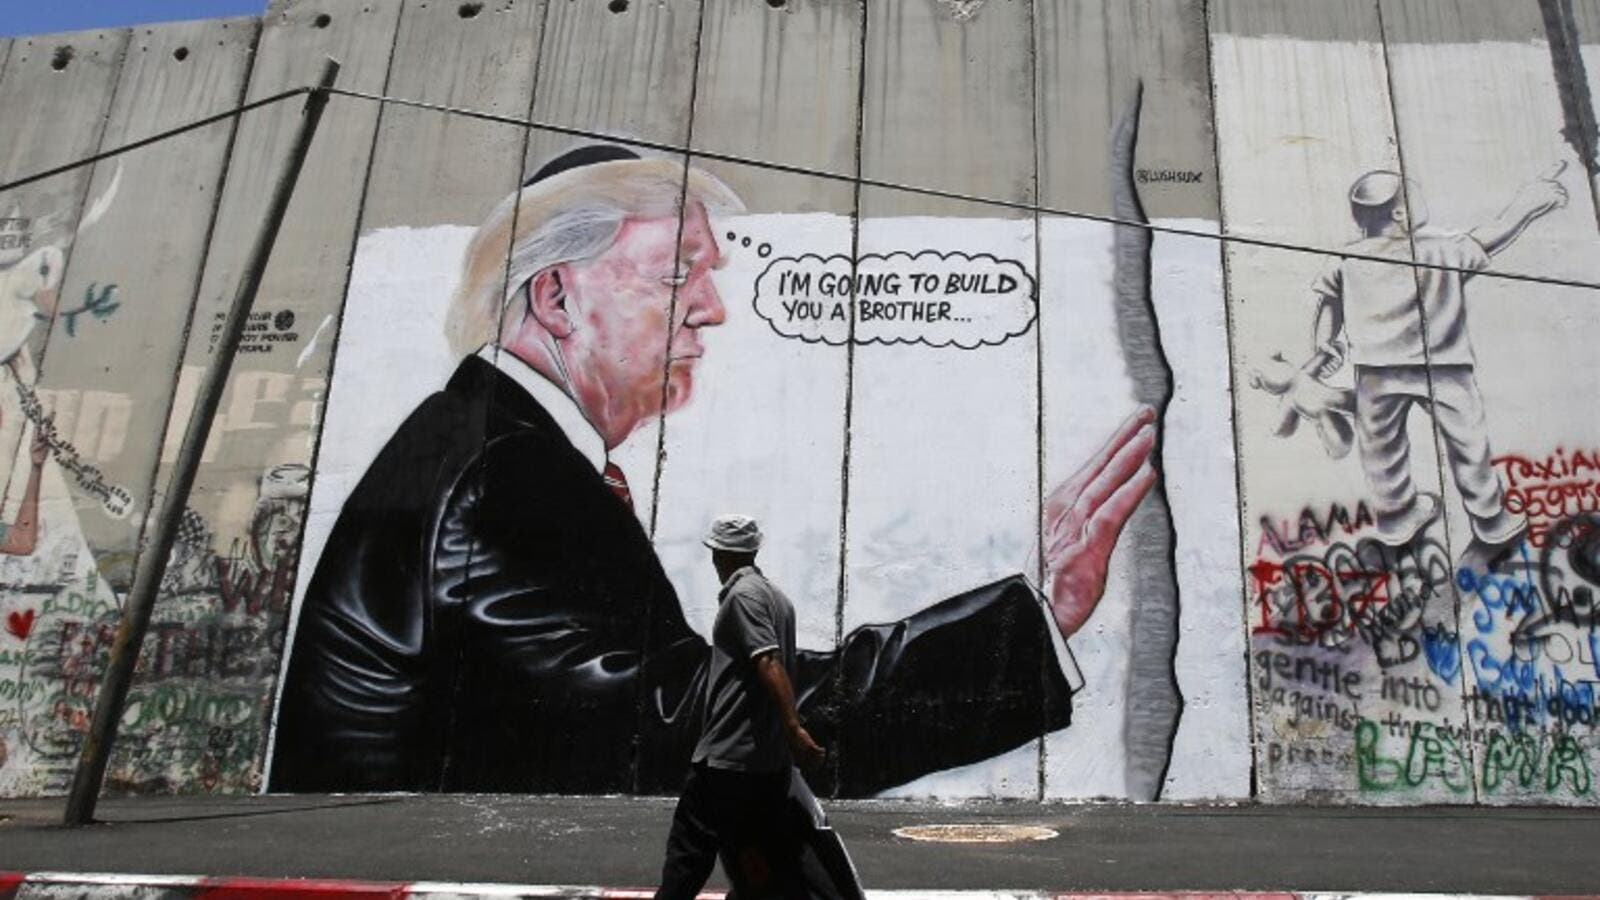 'I'm going to build you a brother' reads new West Bank separation wall graffito (AFP)